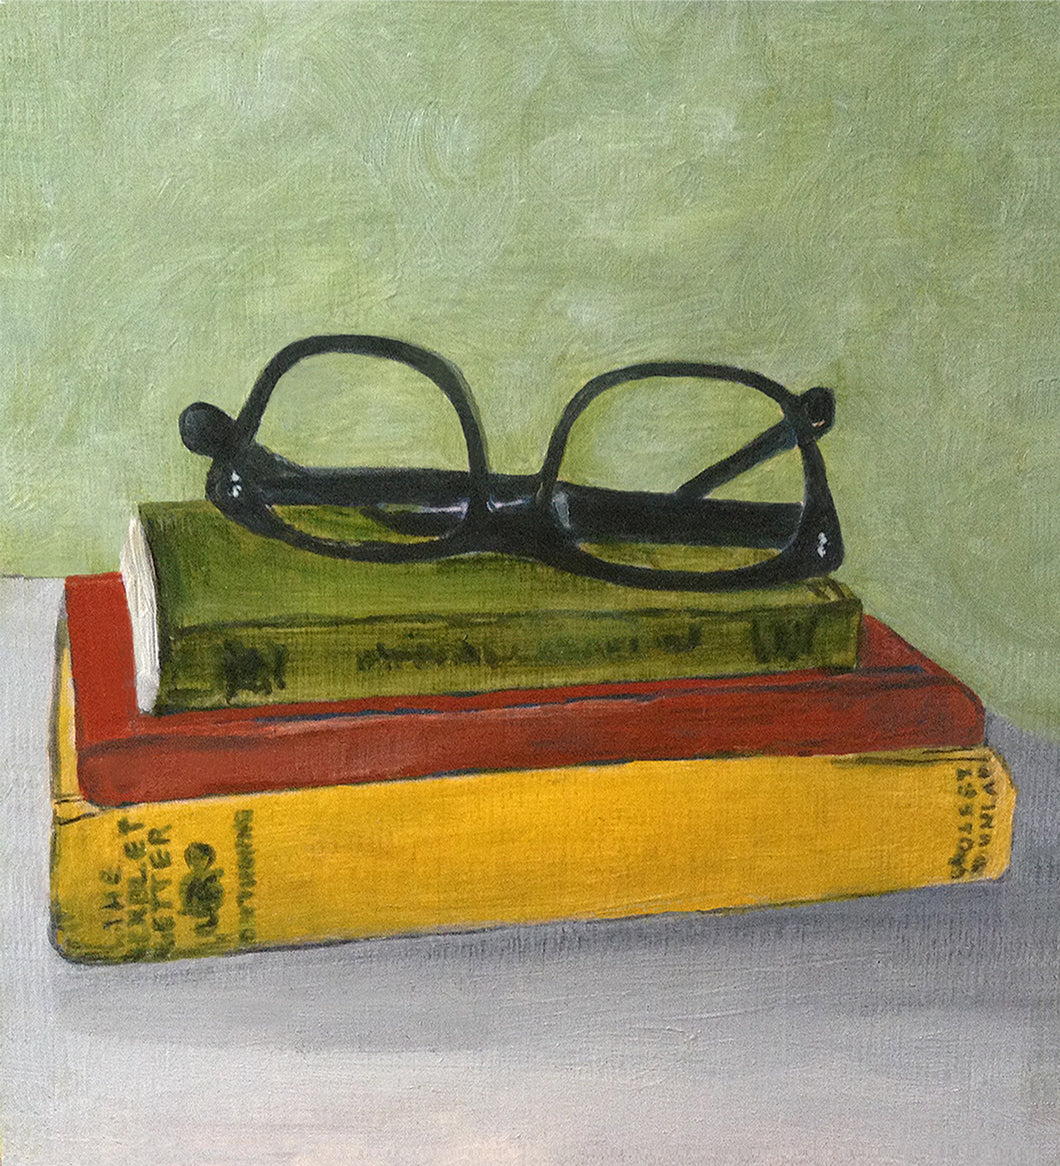 Books with Glasses